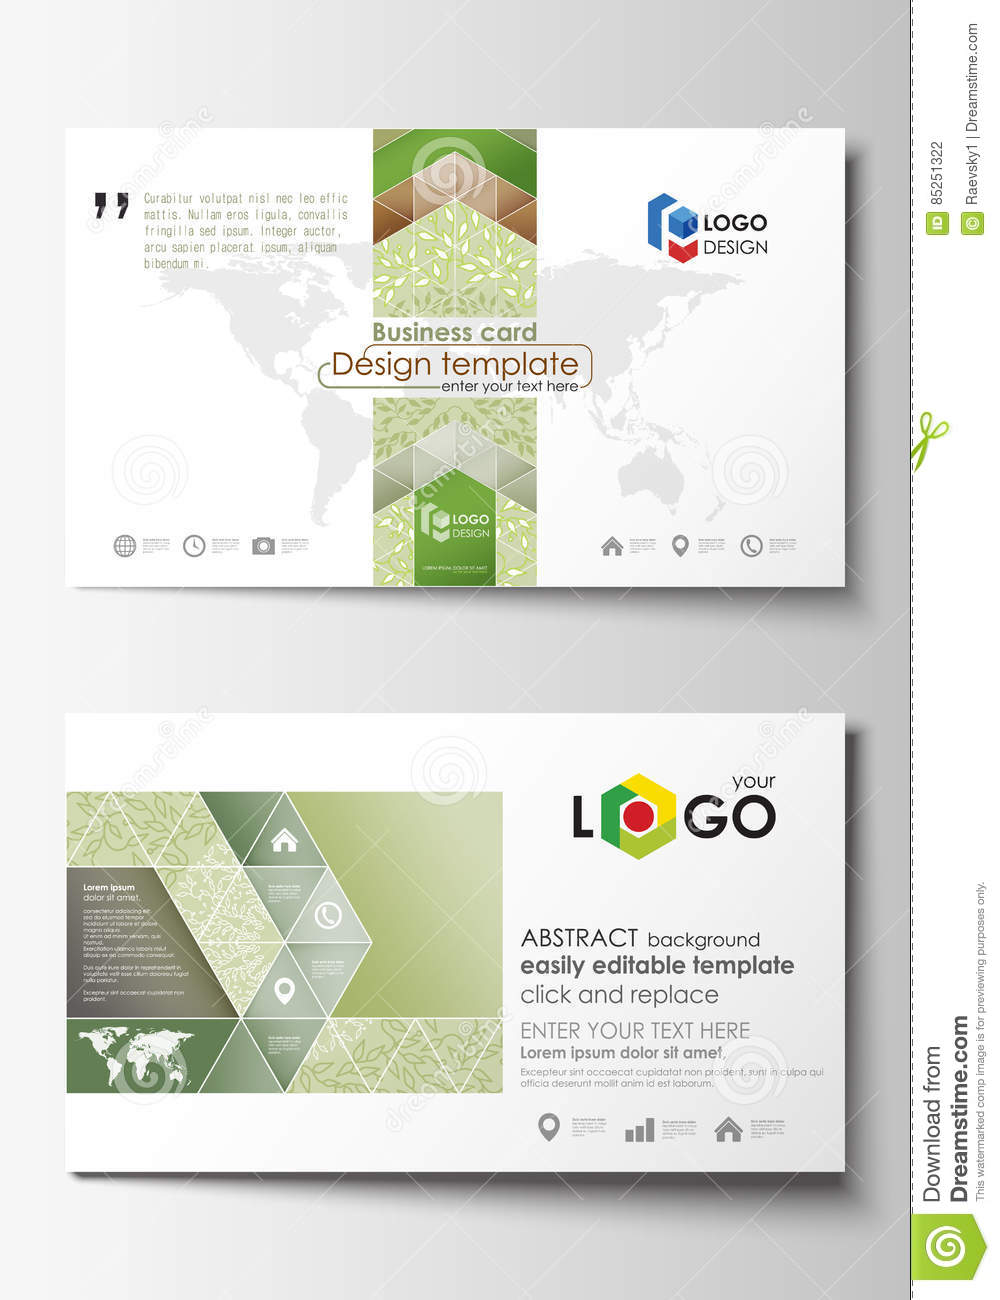 Business card templates easy editable layout abstract flat design business card templates easy editable layout abstract flat design vector template green color wajeb Images